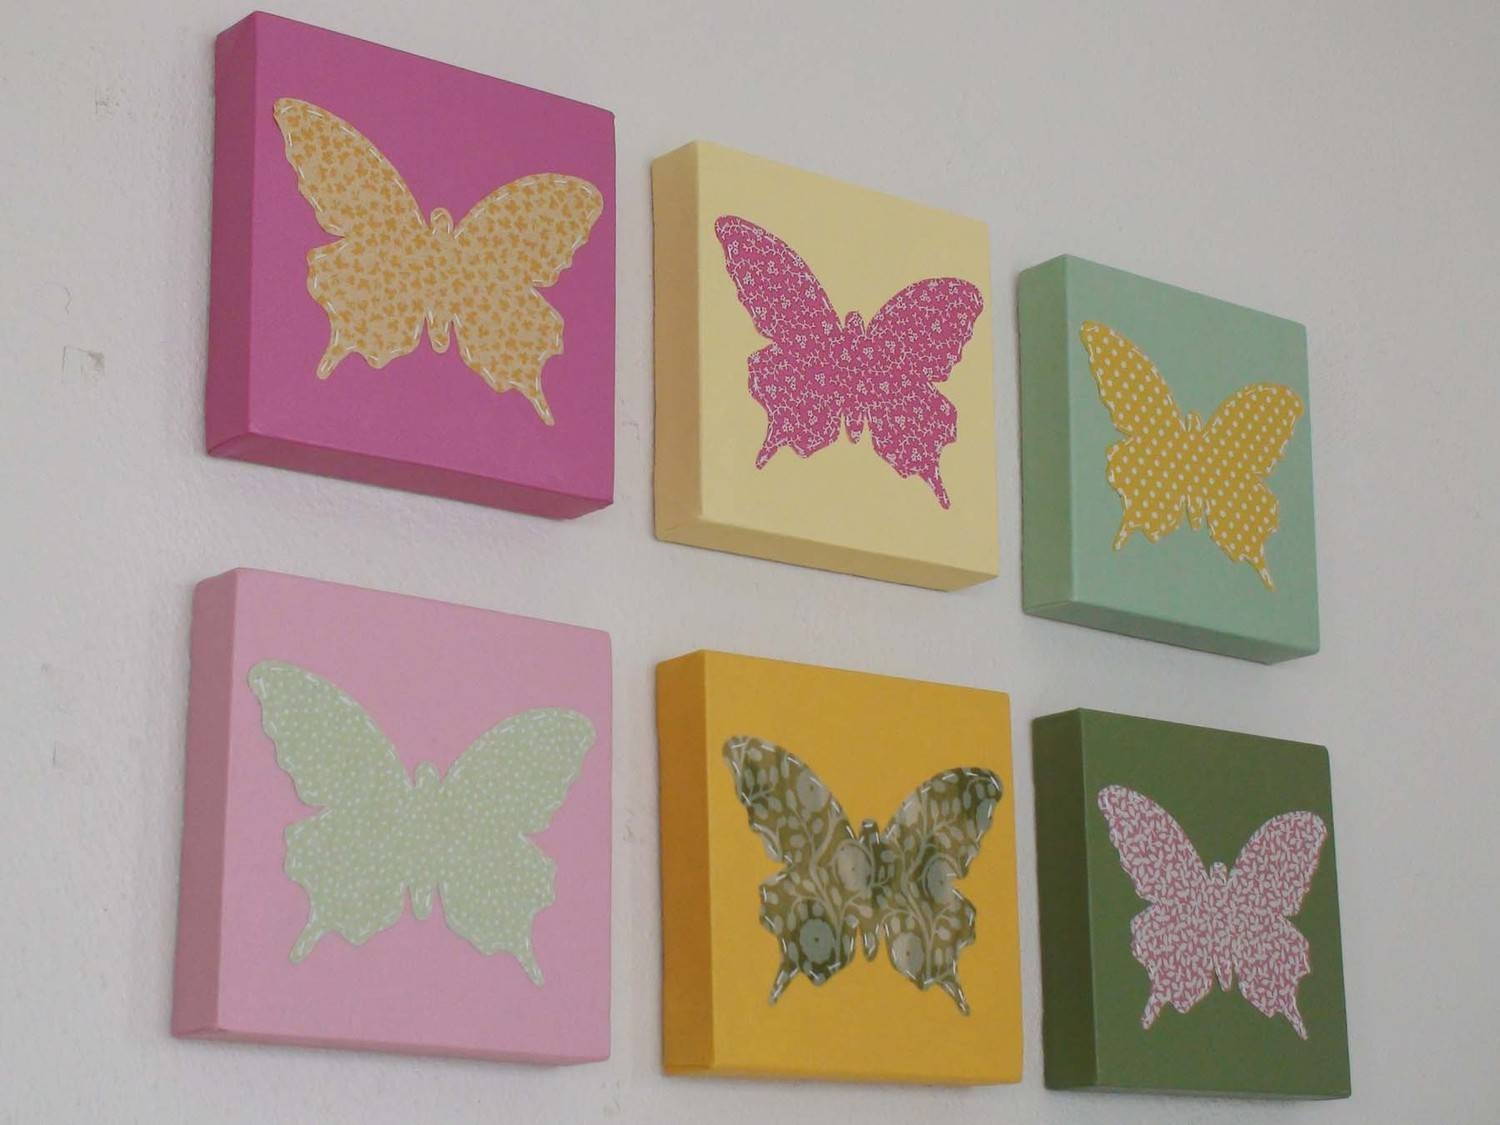 Eight Butterfly Canvas Wall Decorations | Decor Woo With Regard To Most Popular Butterfly Canvas Wall Art (View 7 of 20)